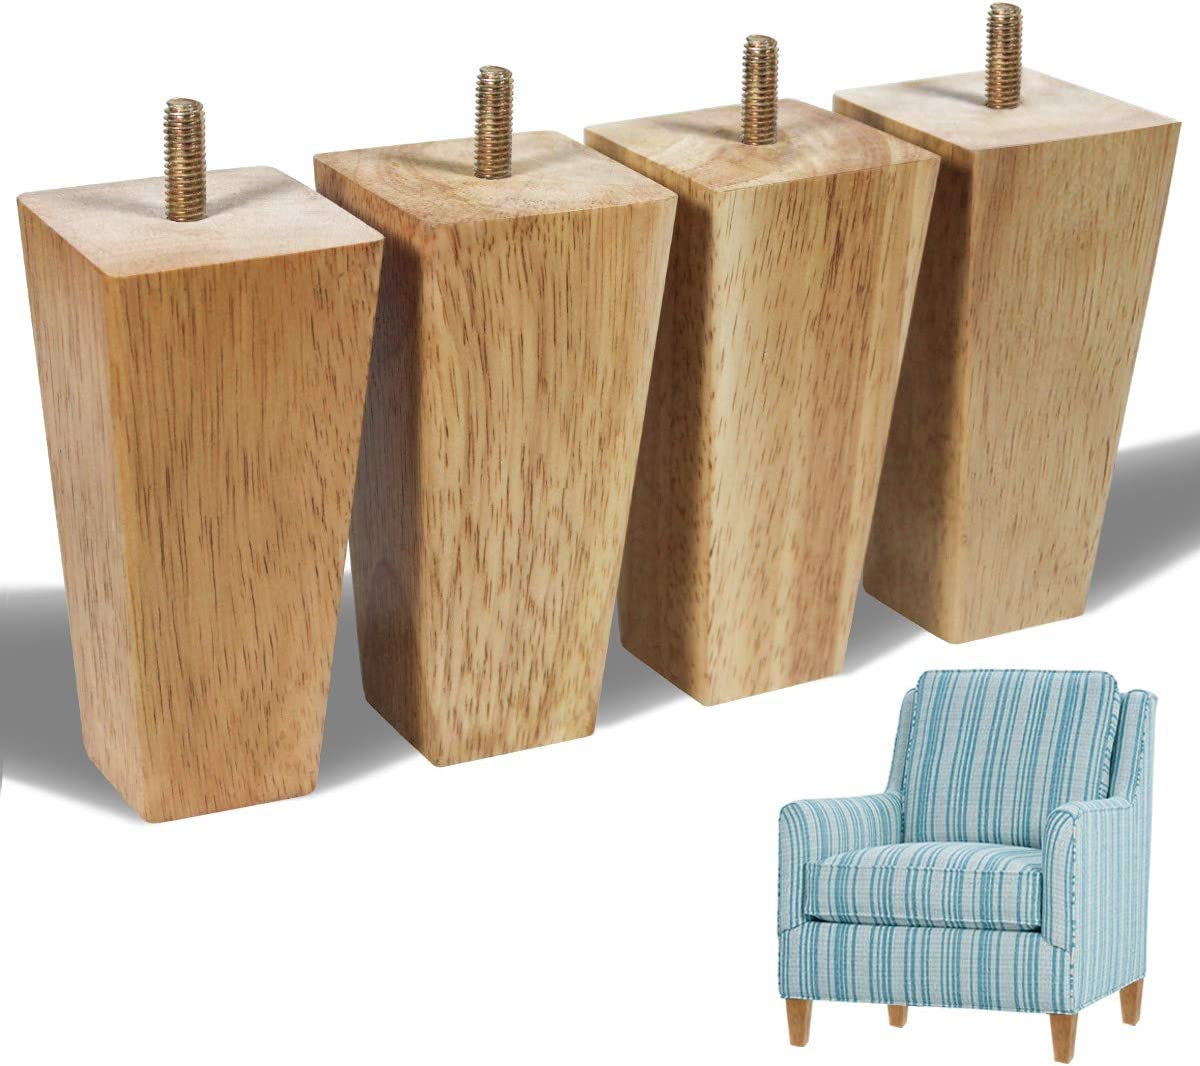 Wood Legs for Furniture Legs Replacement 5 inch Light-Tone Wood Color Square Sofa Feet for Couch Cabinet Ottoman Pack of 4